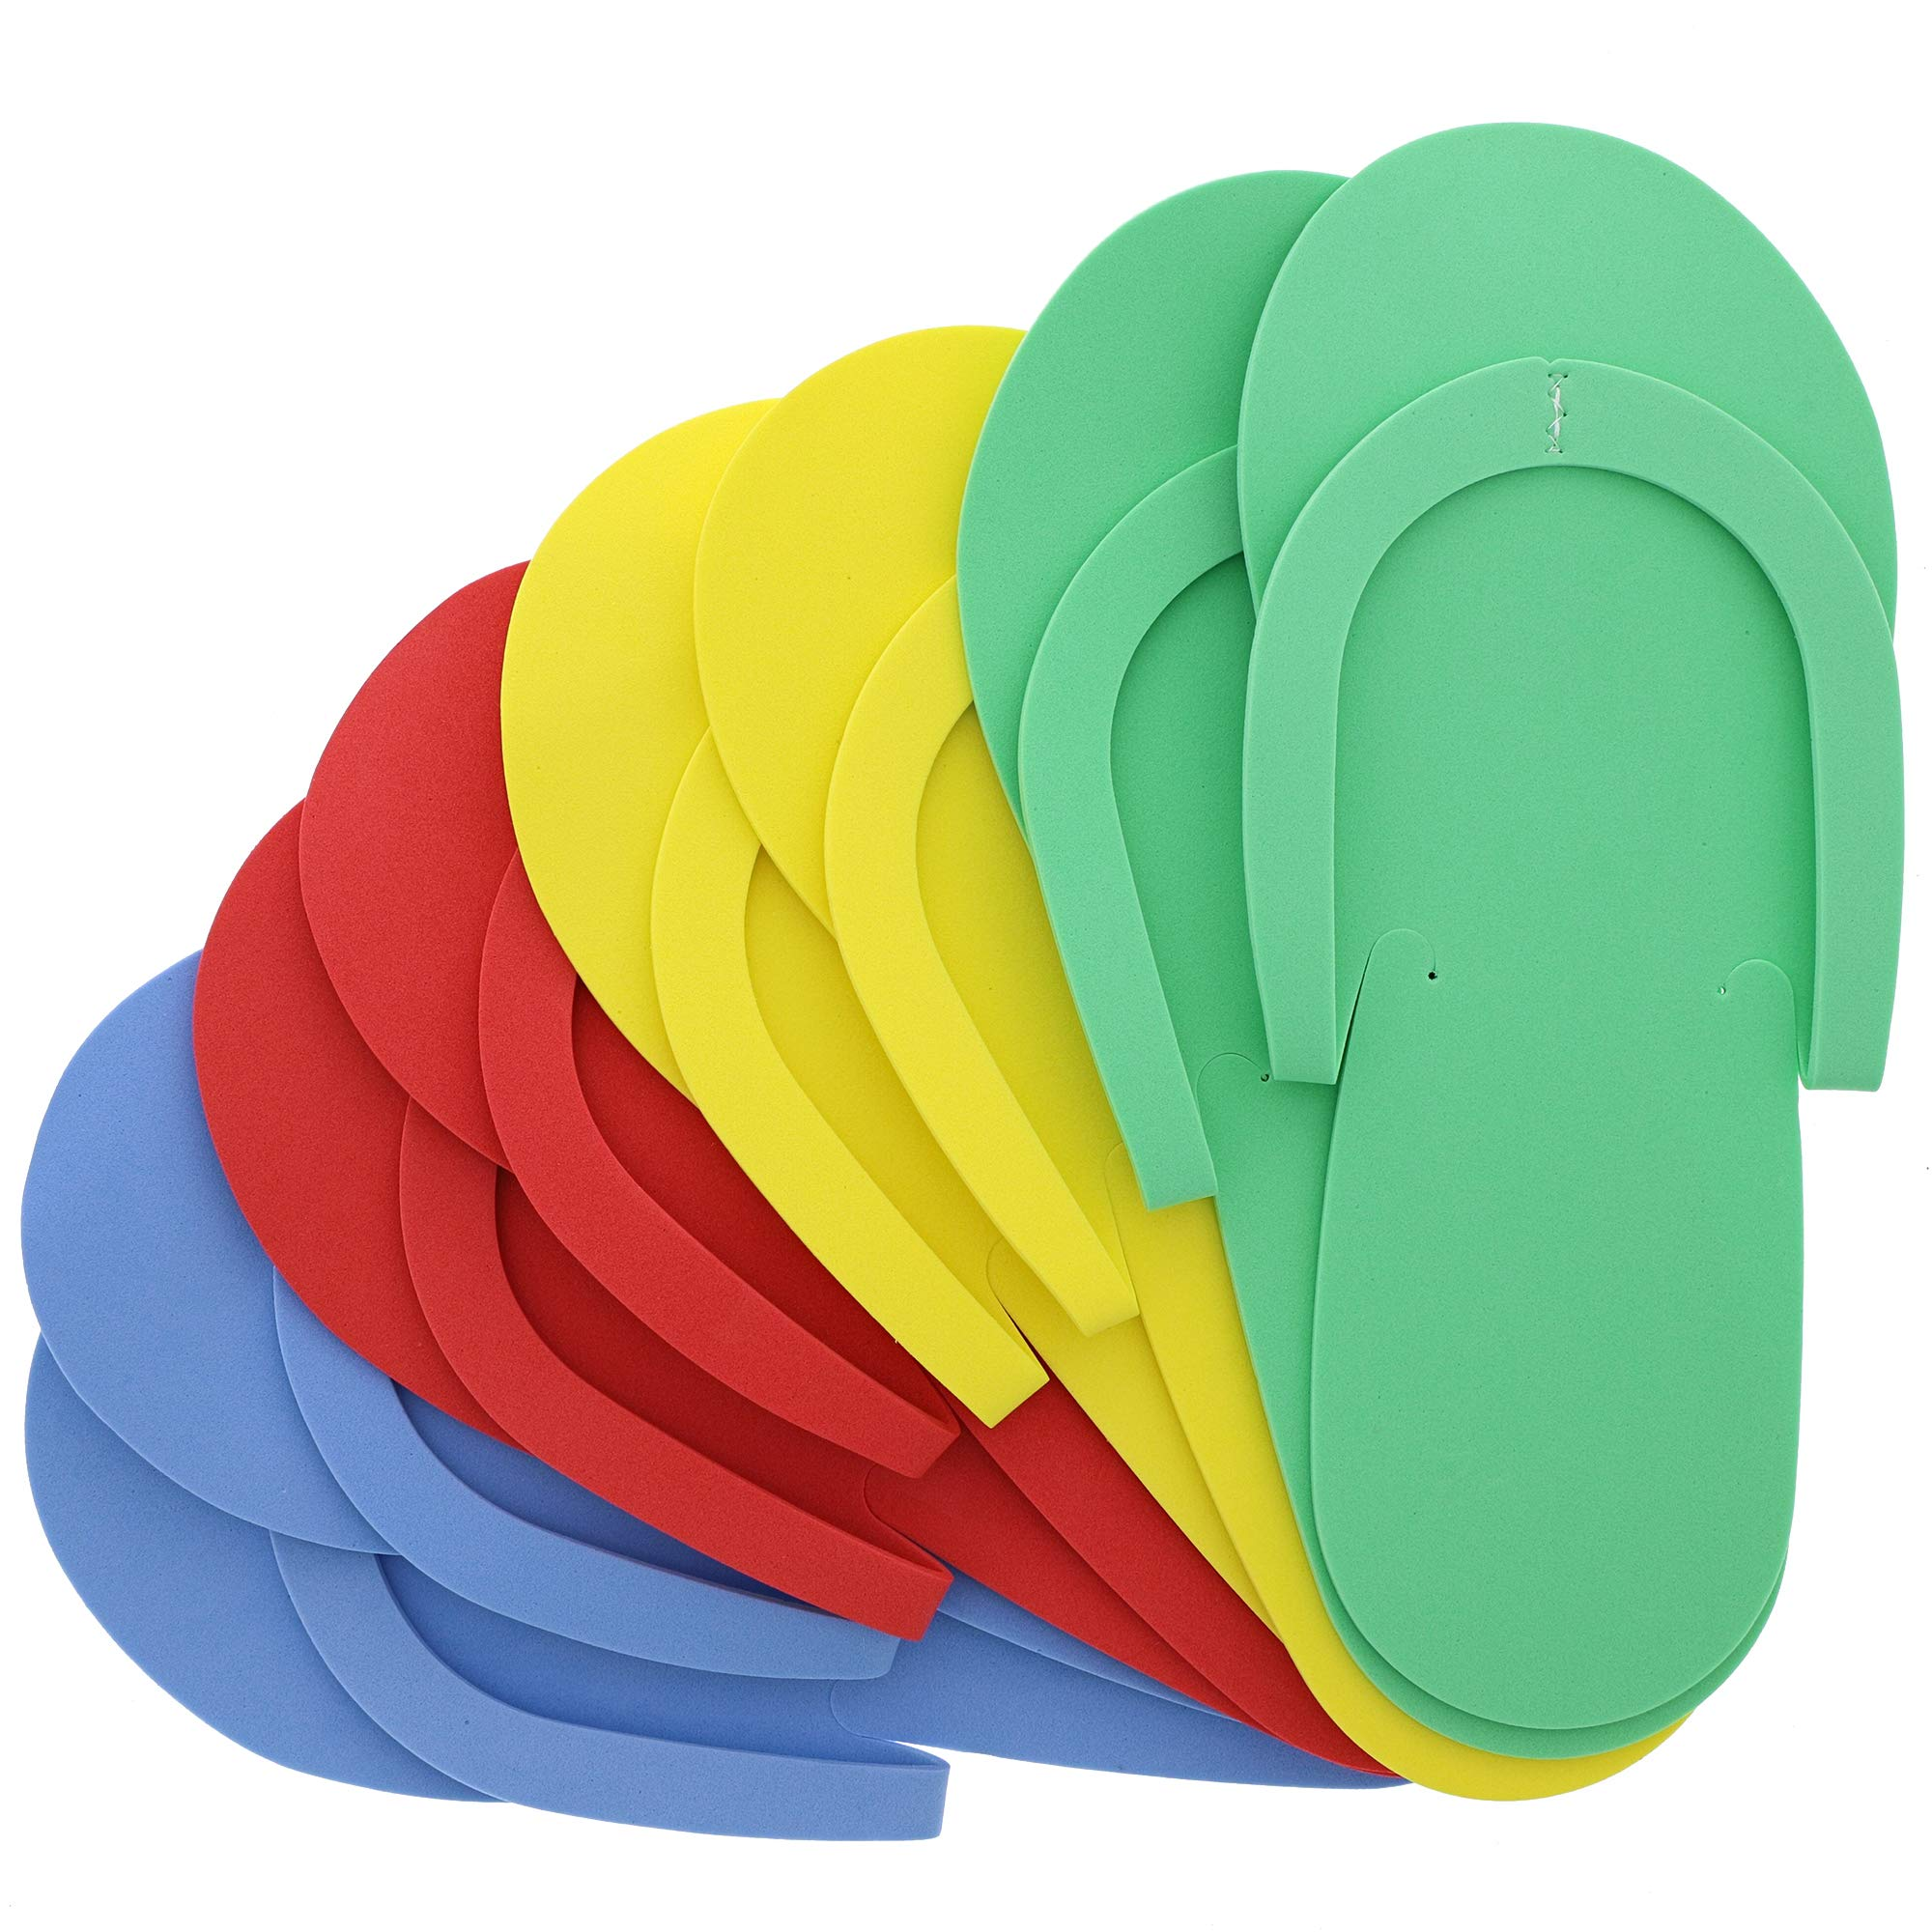 Juvale Pedicure Slippers, Disposable Flip Flops (48 Pairs), 4 Colors, One Size by Juvale